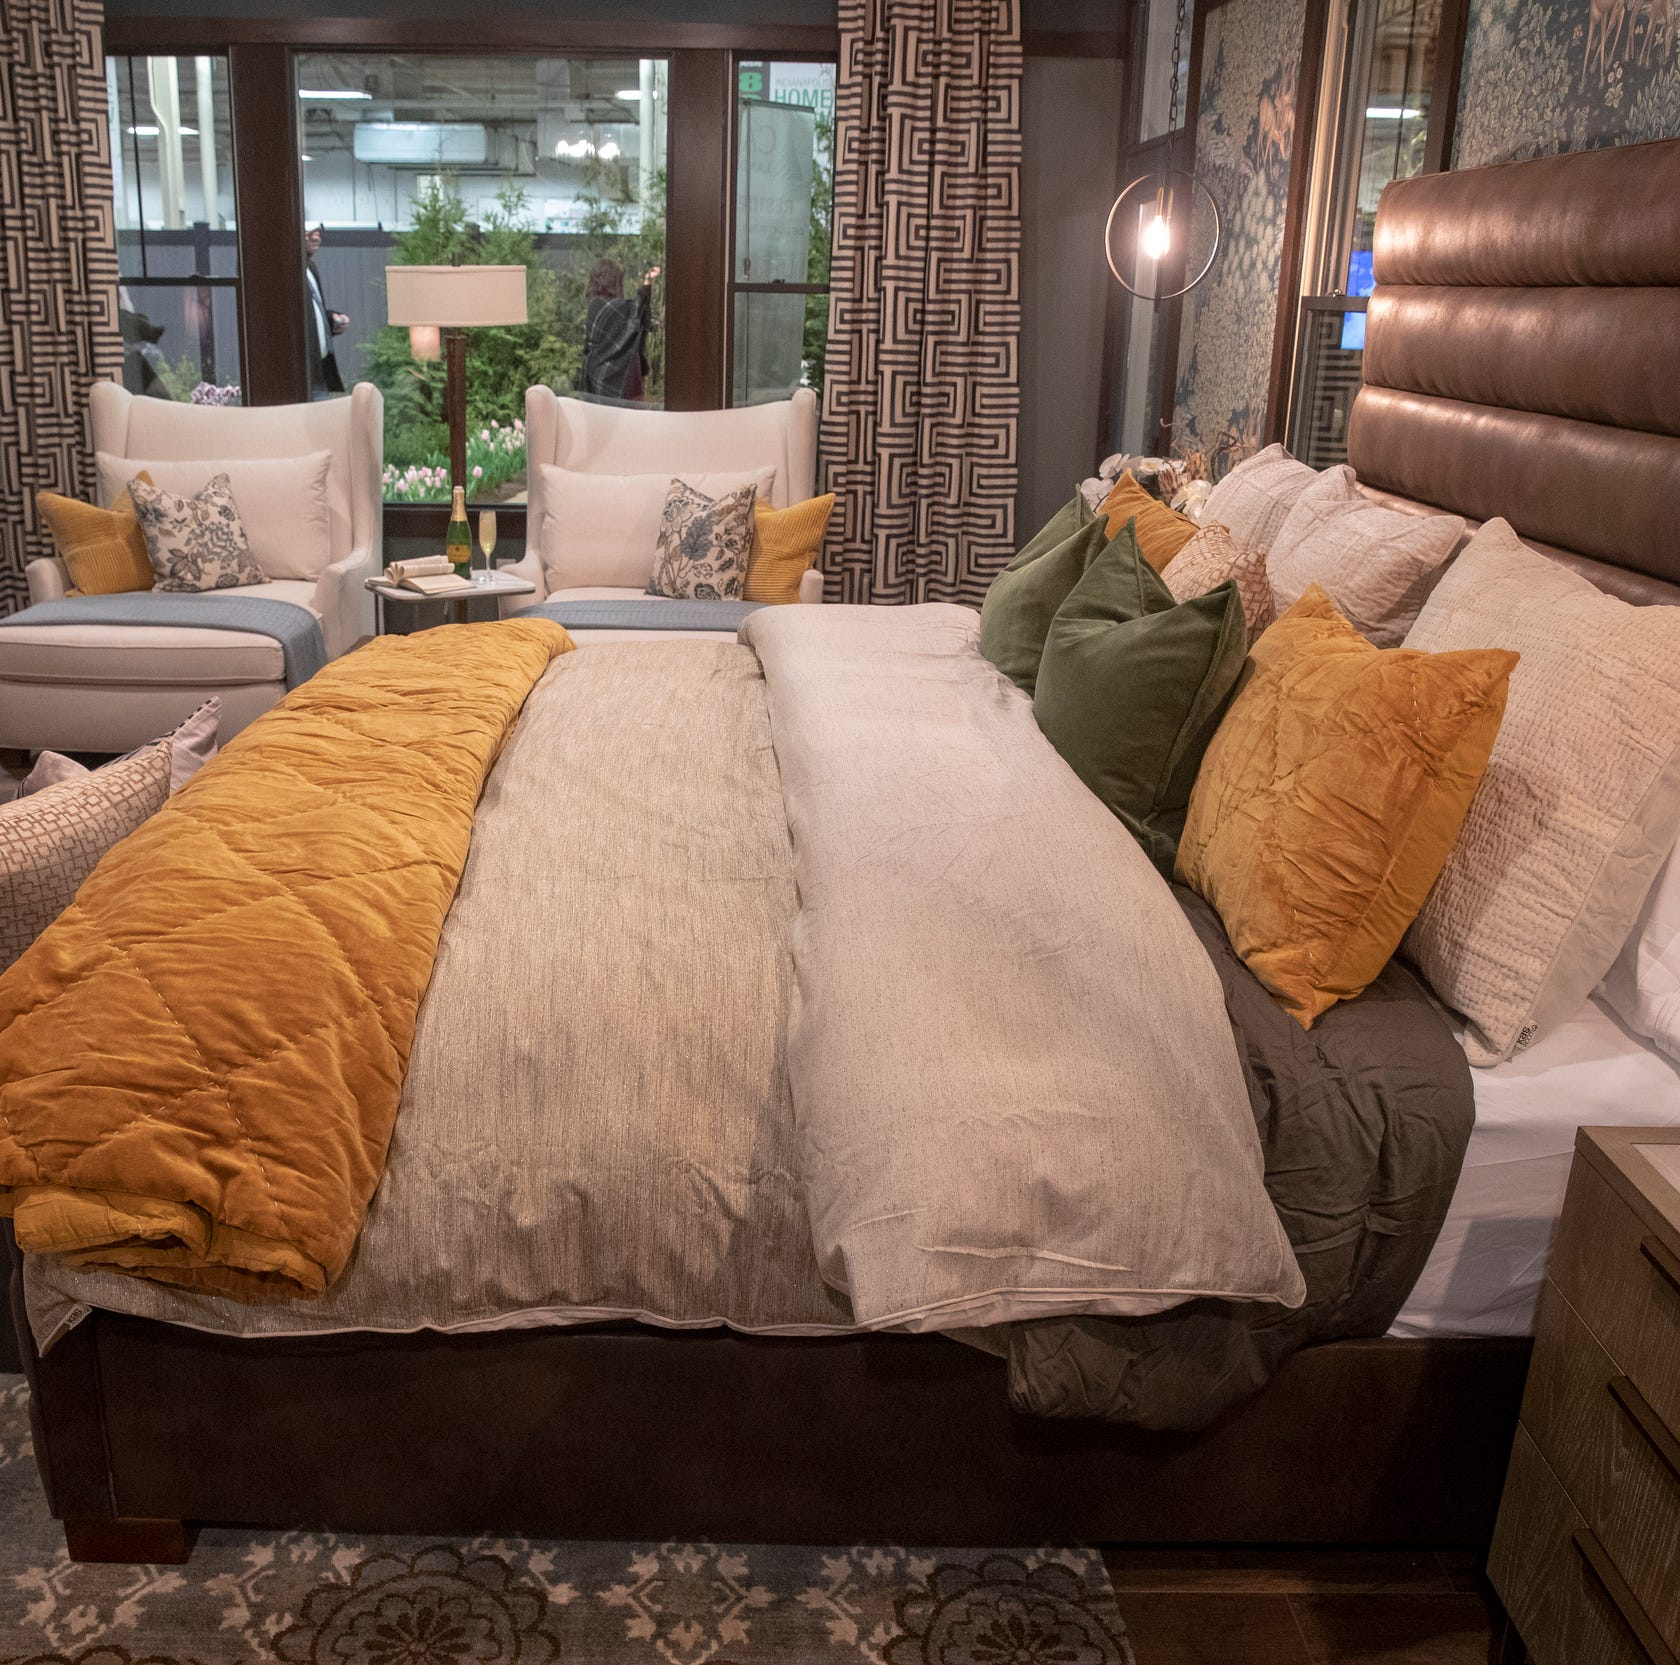 Here's everything you need to know about the 2019 Indianapolis Home Show